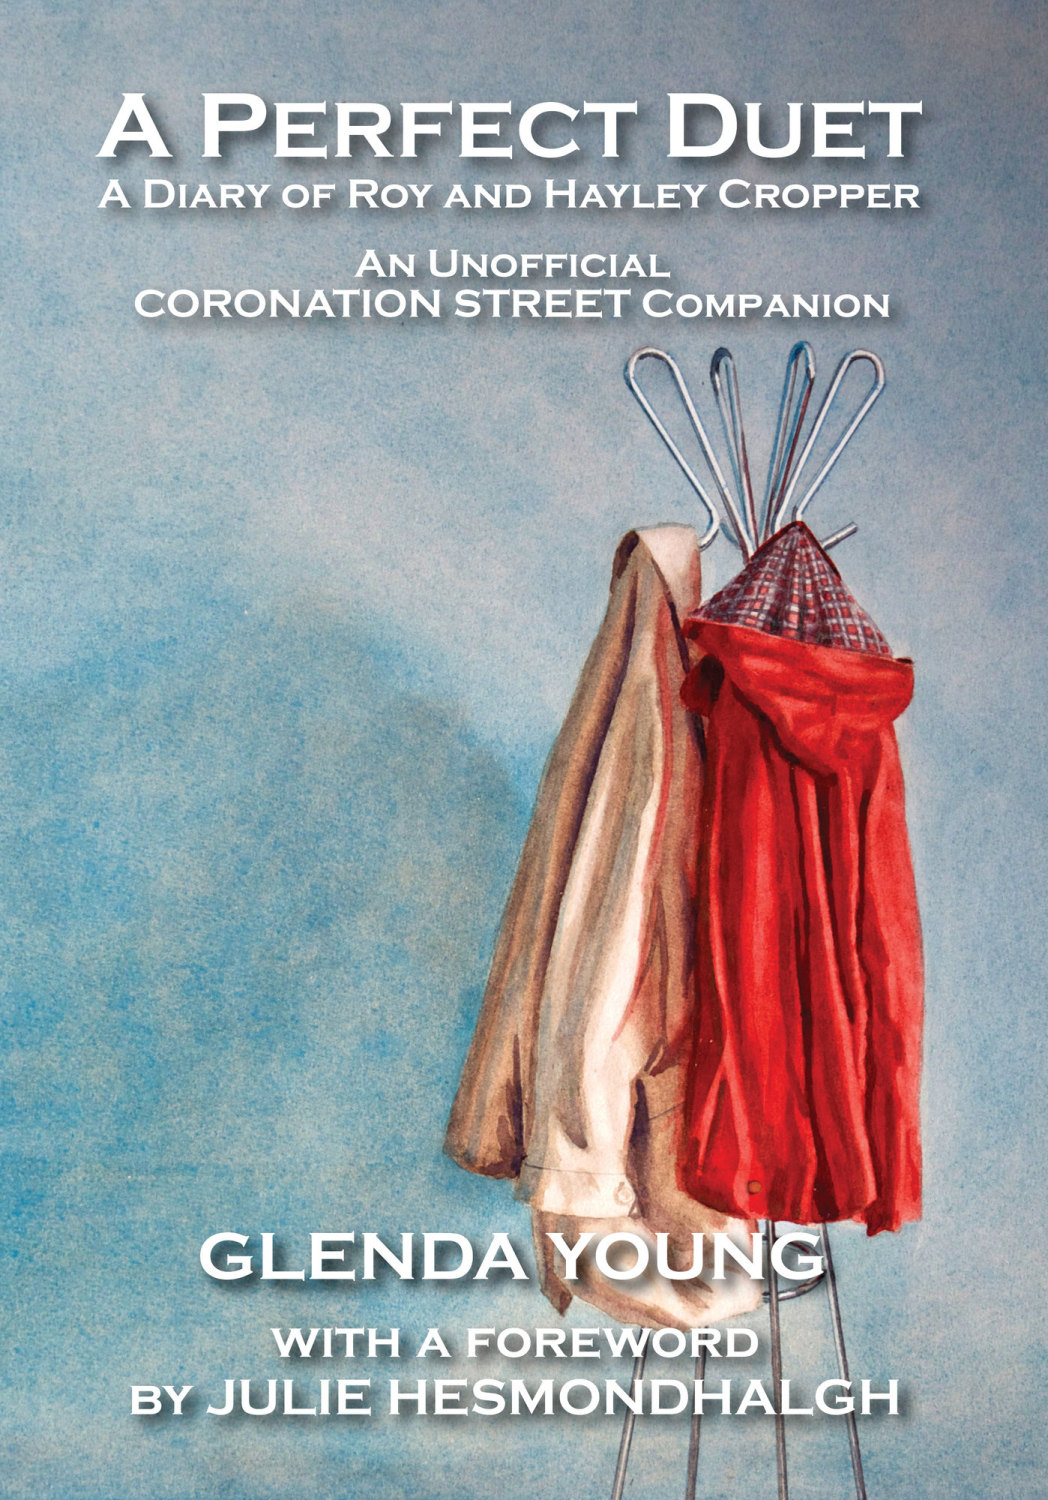 A Perfect Duet. The Diary of Roy and Hayley Cropper. By Glenda Young